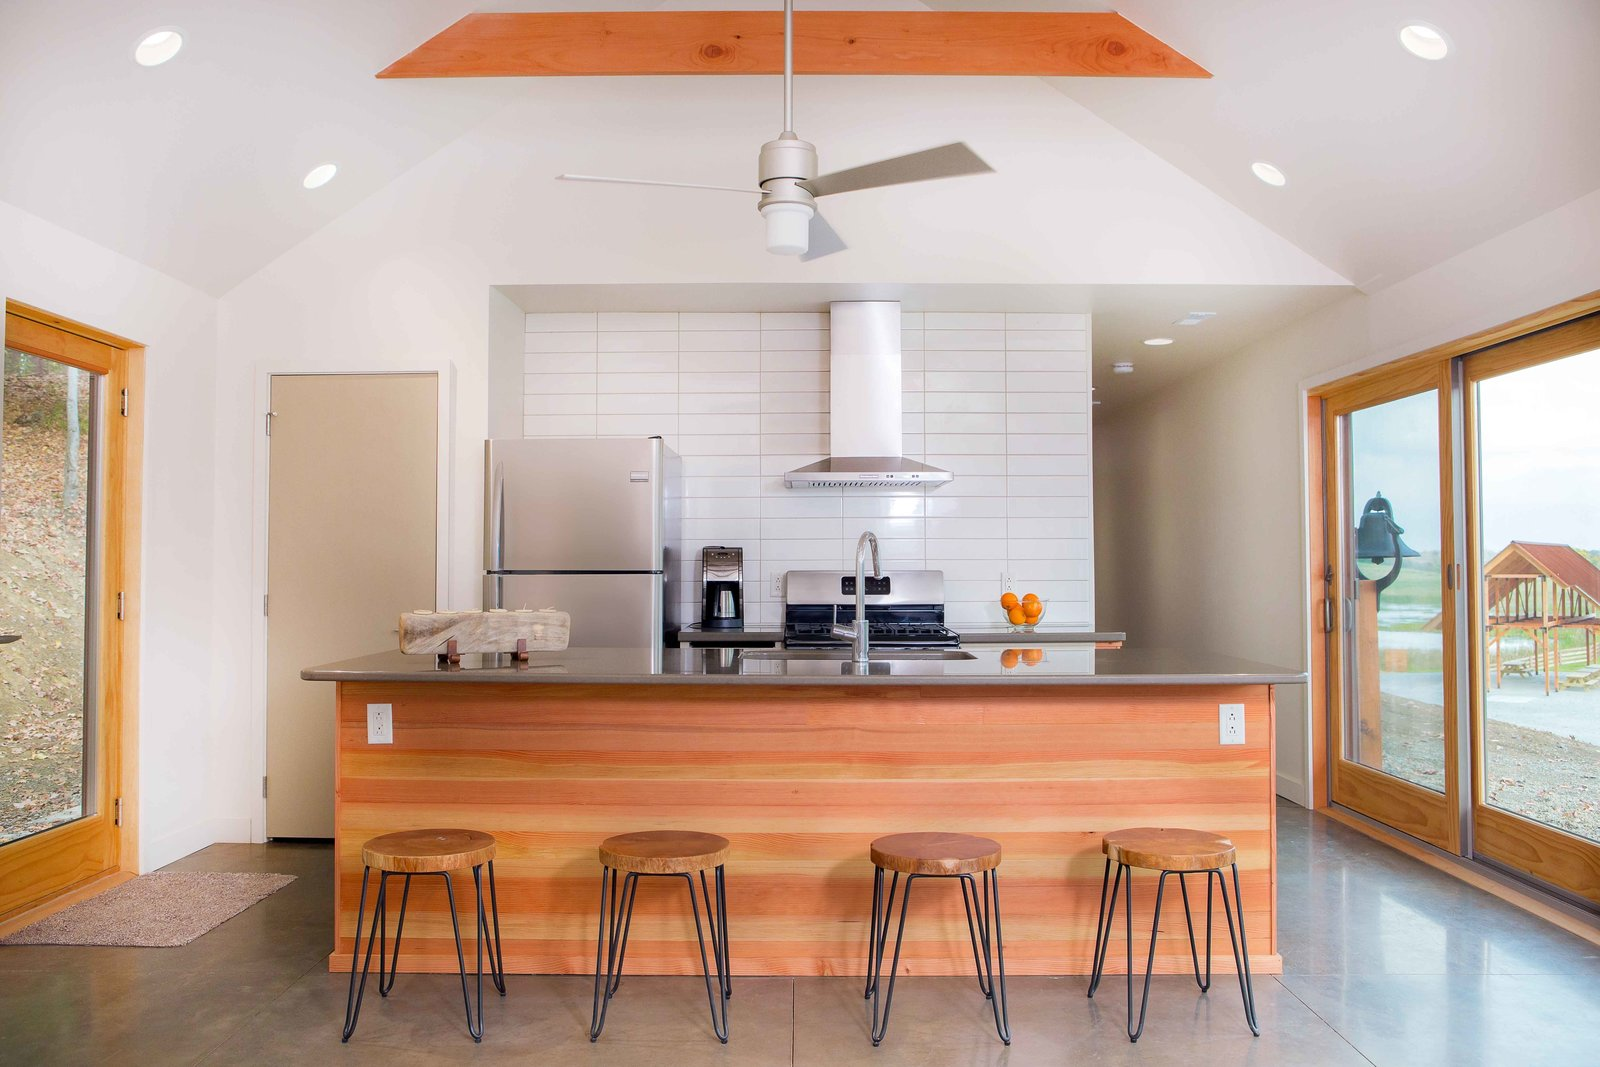 The kitchen island, also Douglas fir, showcases the material's rich striations and color variations. Behind the kitchen are two bedrooms and a single bathroom. A large open air pavilion, built concurrently with the cabin, can be seen from the windows on the right. Off-Grid Retreat by Zachary Edelson